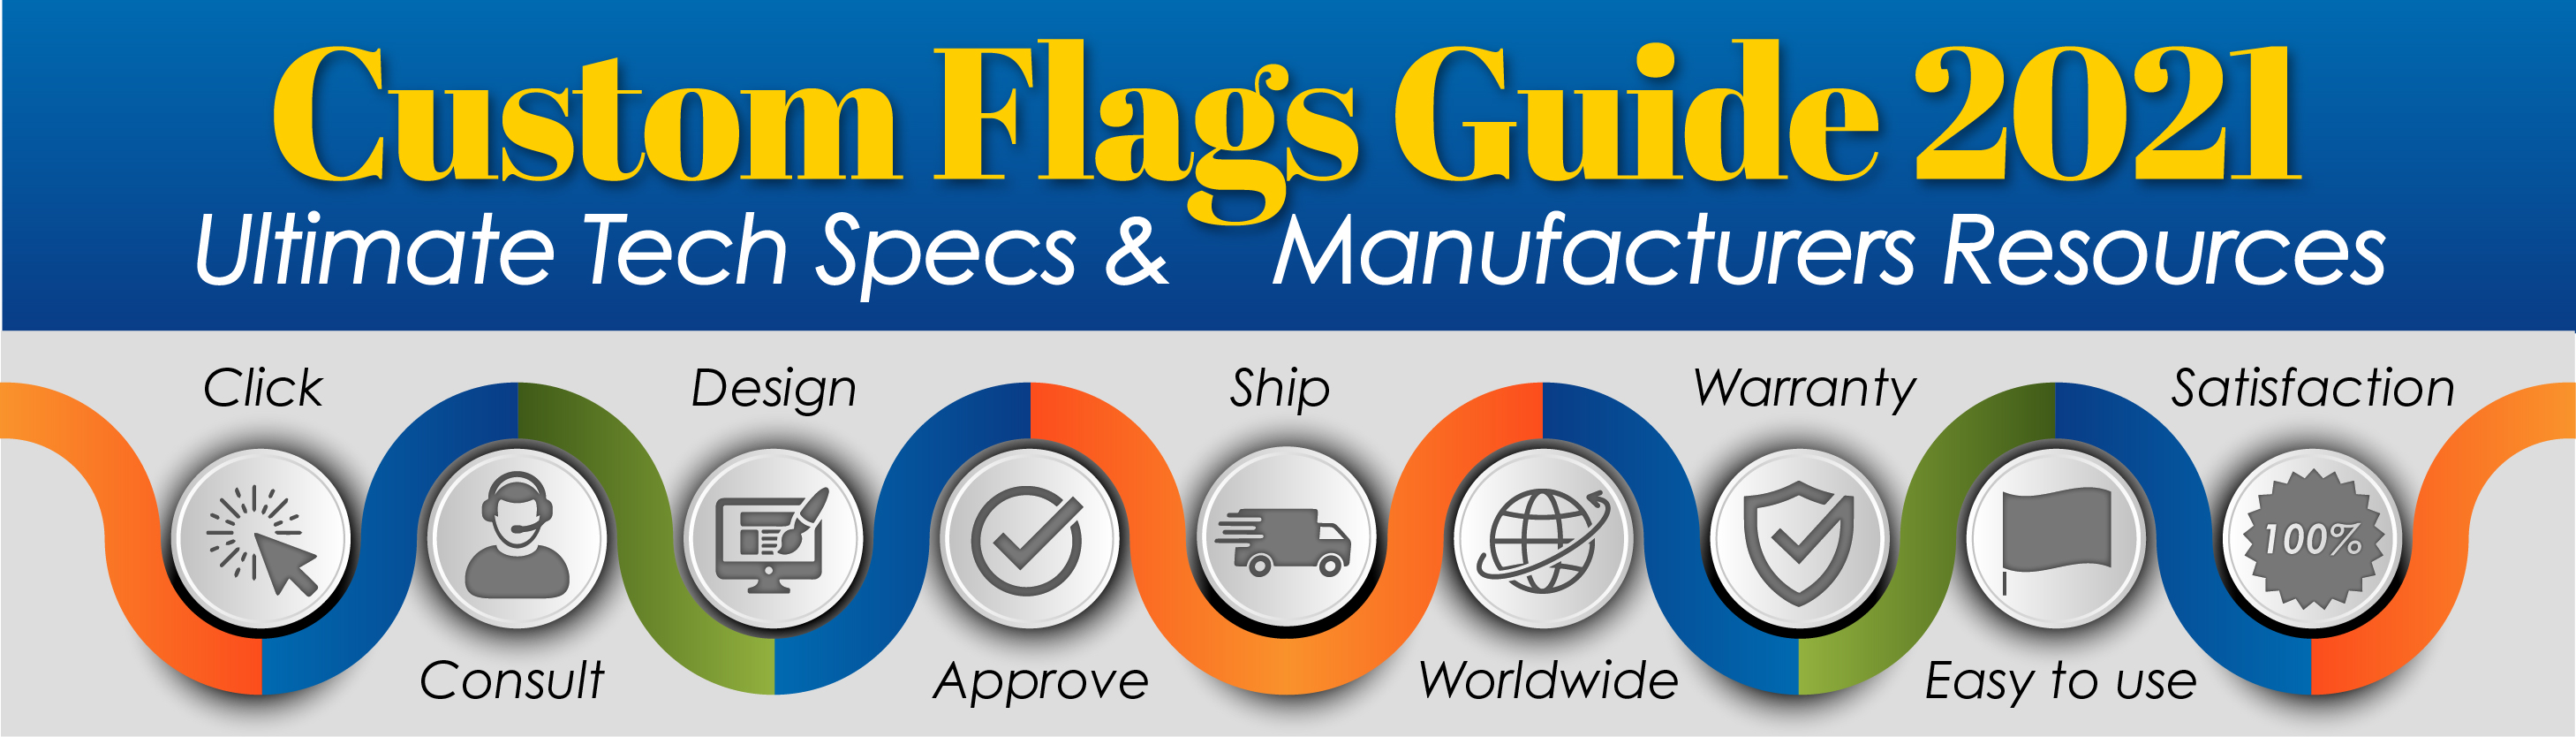 Custom Flags Guide 2021: Ultimate Tech Specs And Manufacturers Resources